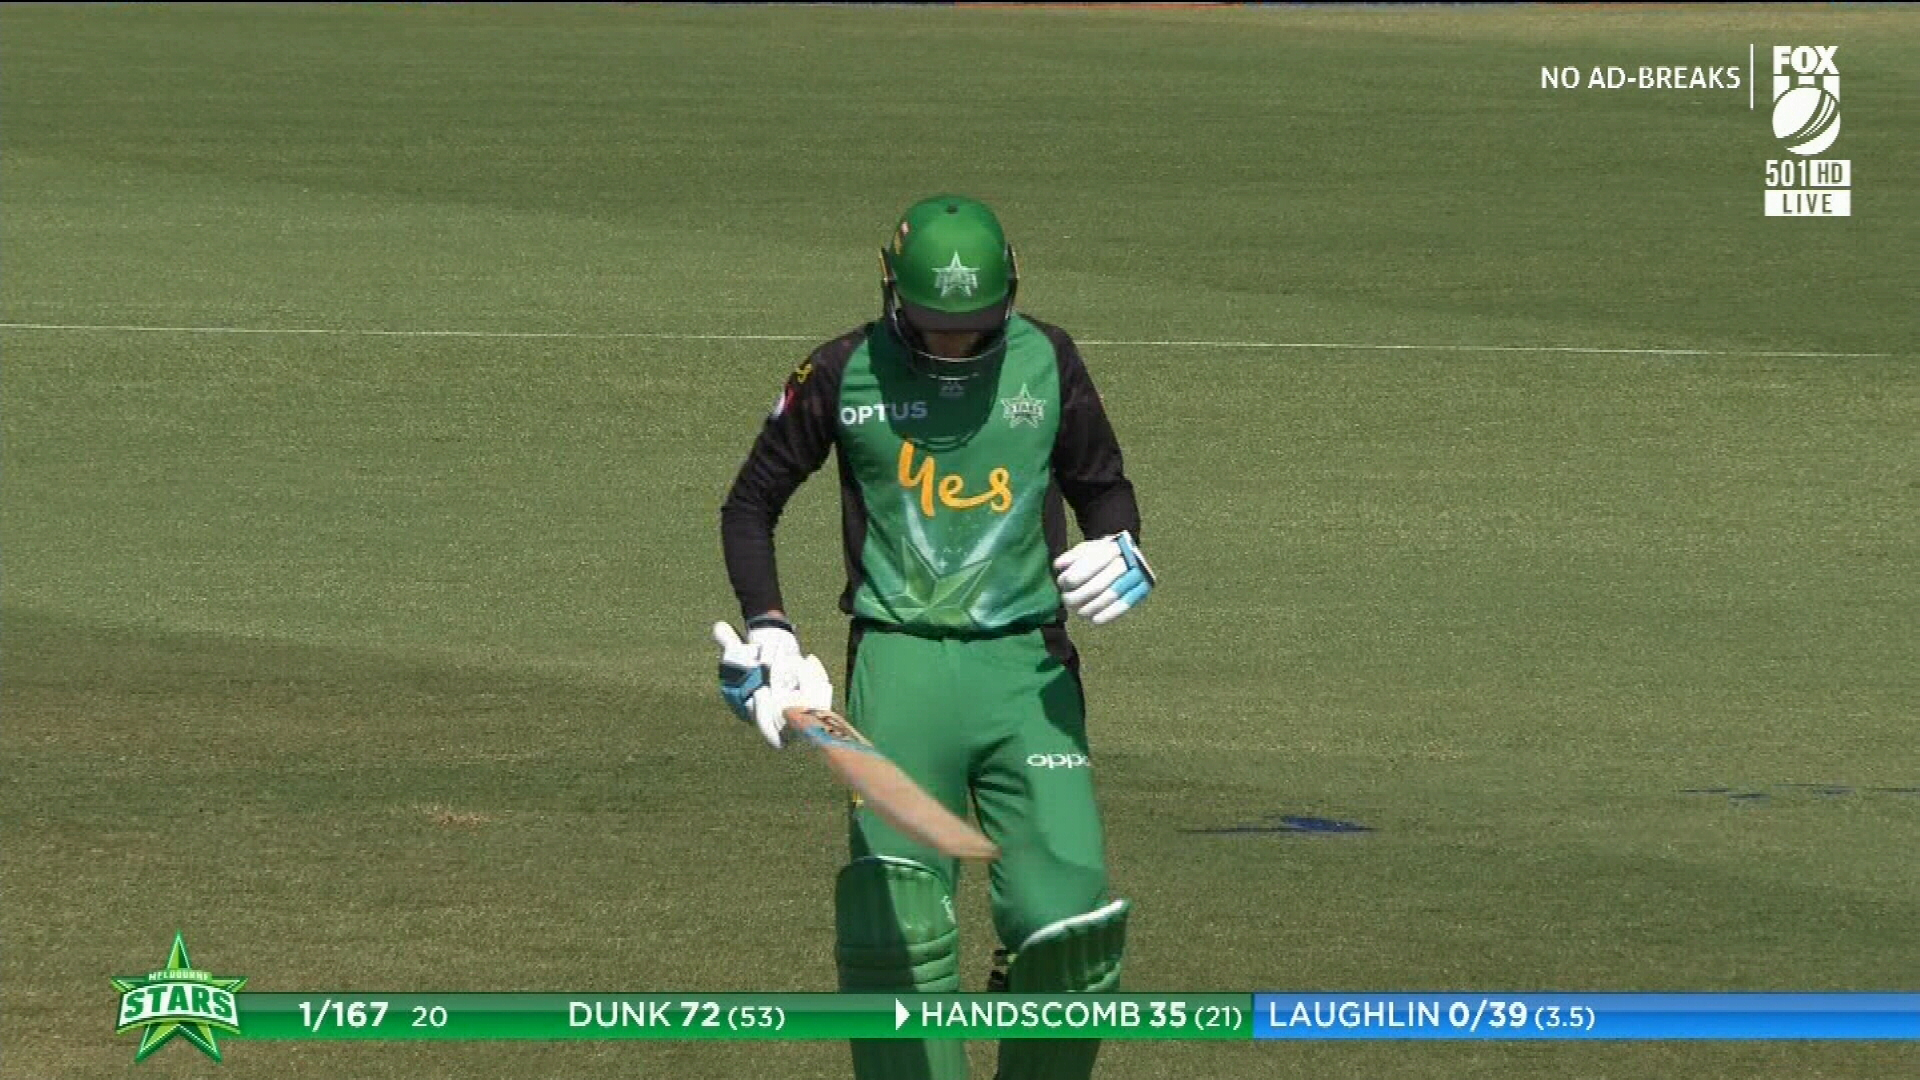 Handscomb shocked by run out